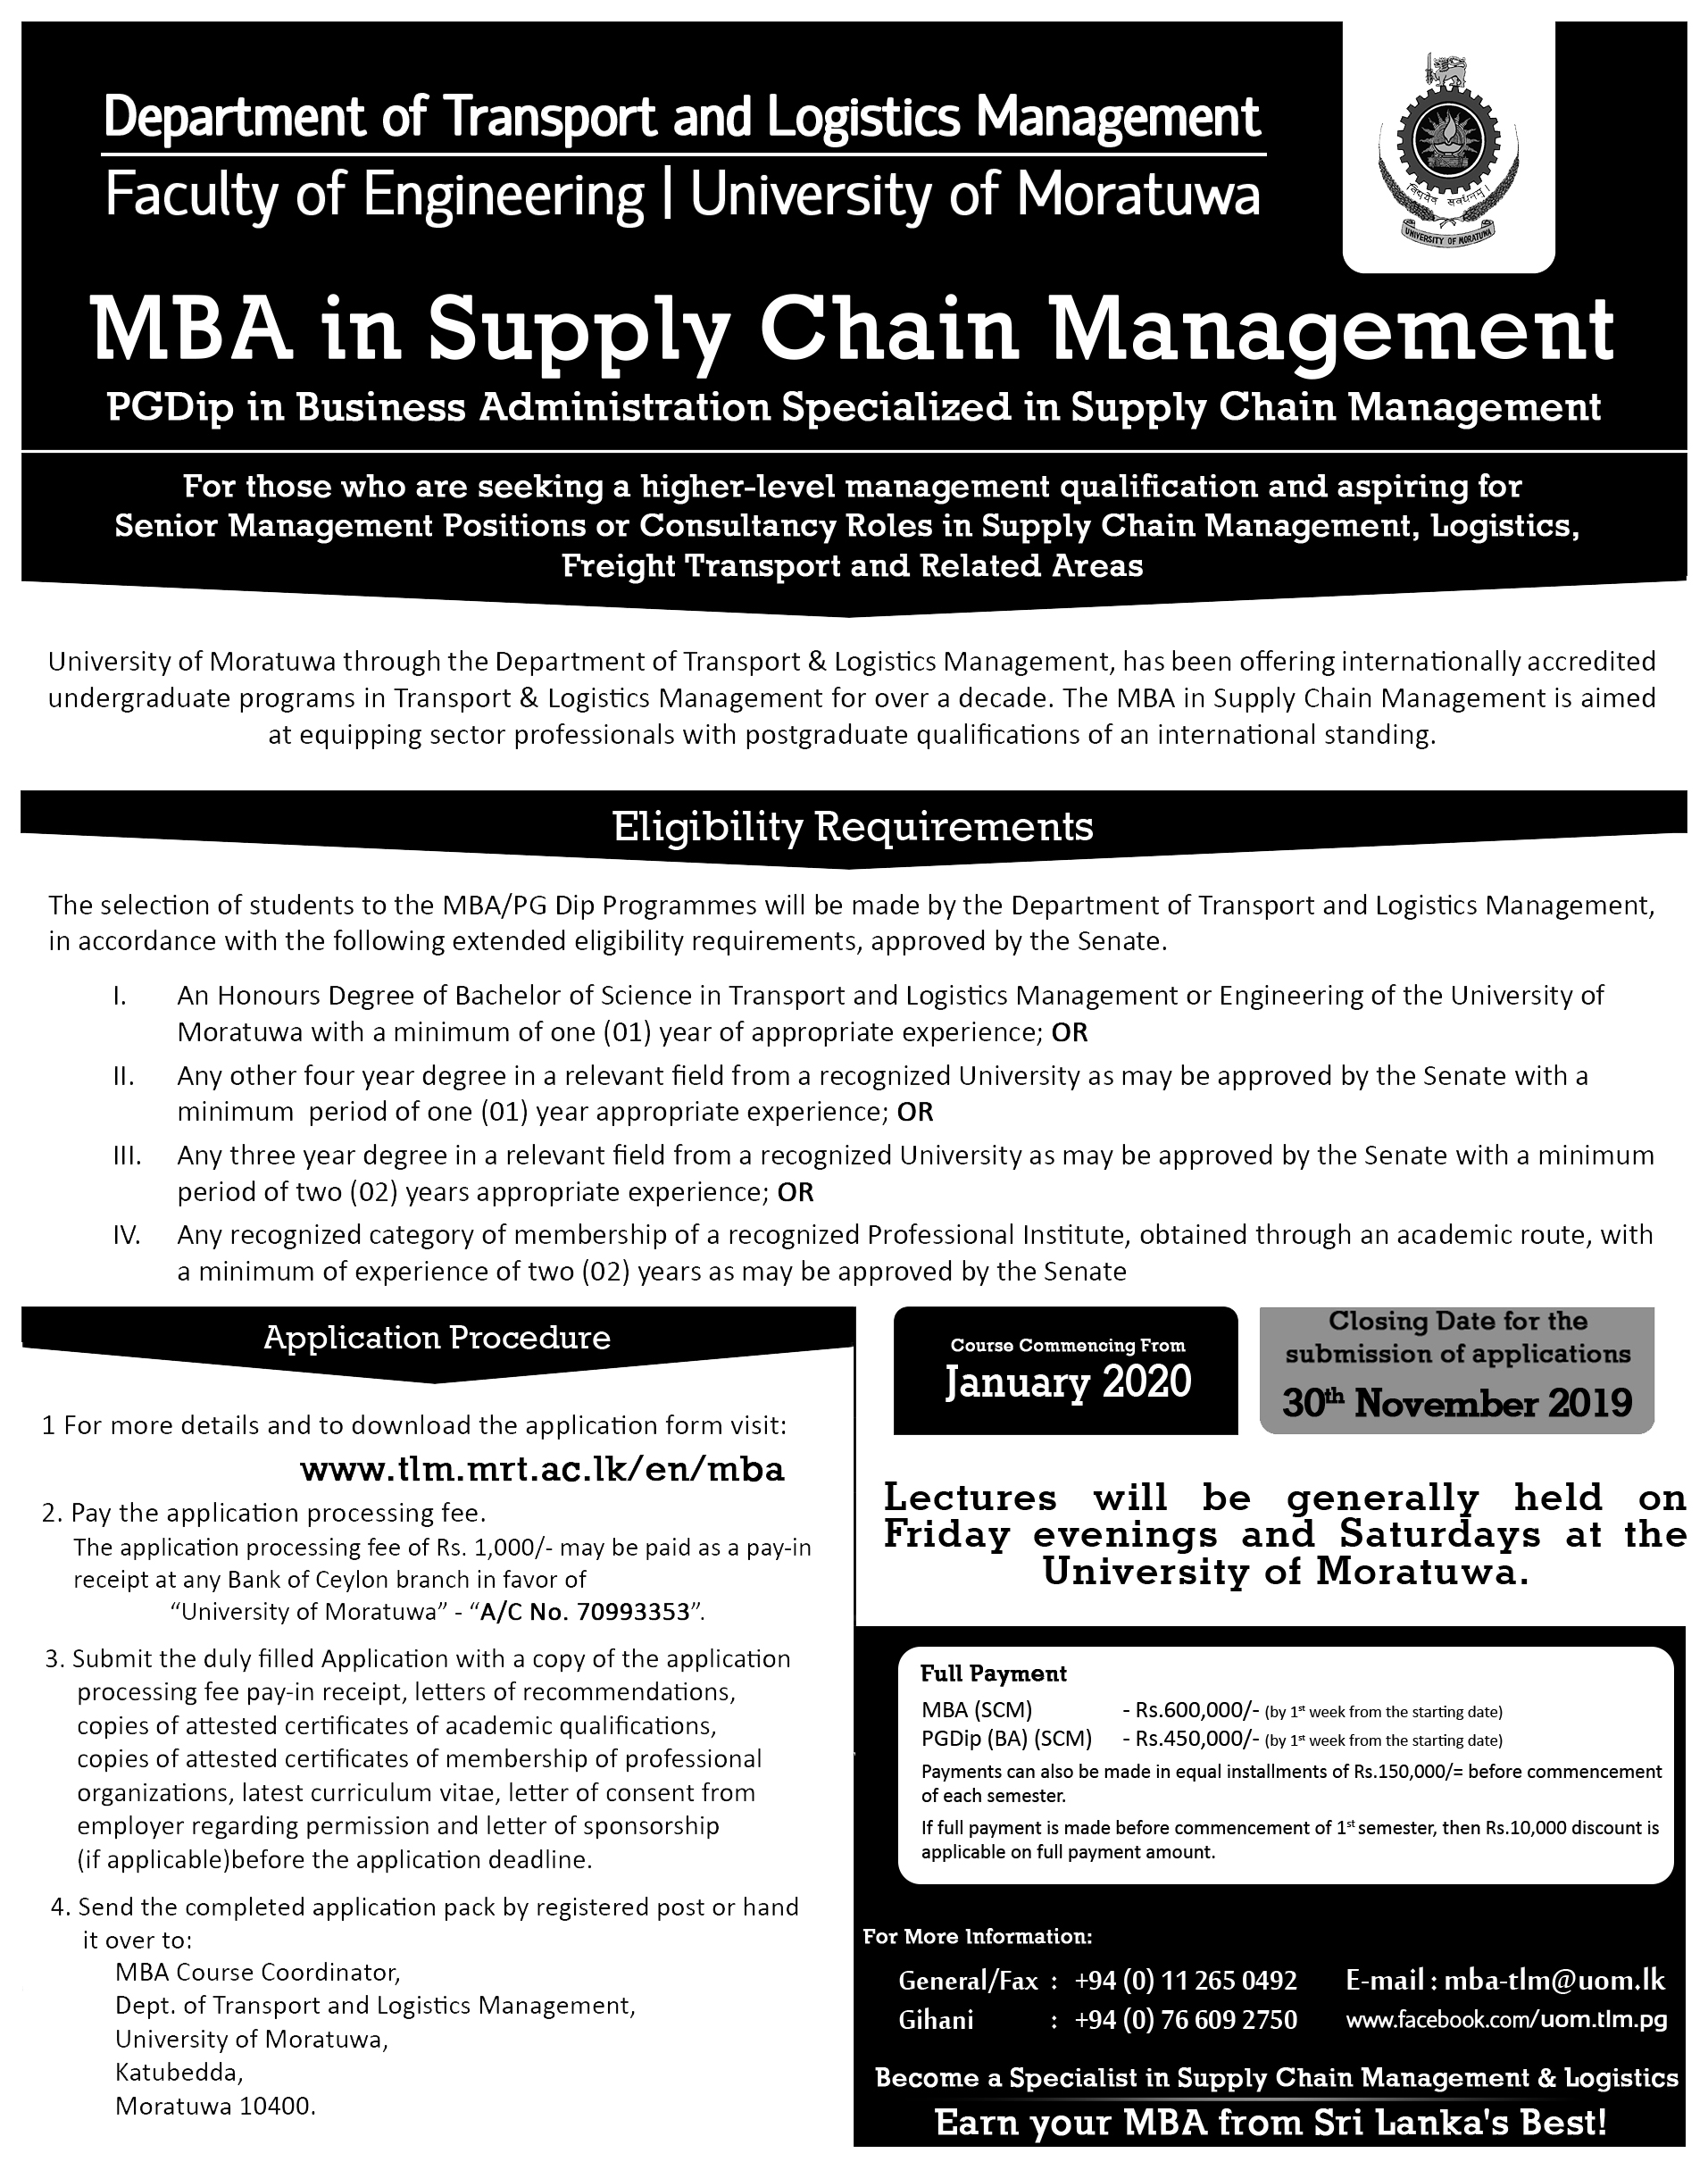 COMMENCEMENT NEW INTAKE 2020 JANUARY - MBA IN SUPPLY CHAIN/ PG DIPLOMA